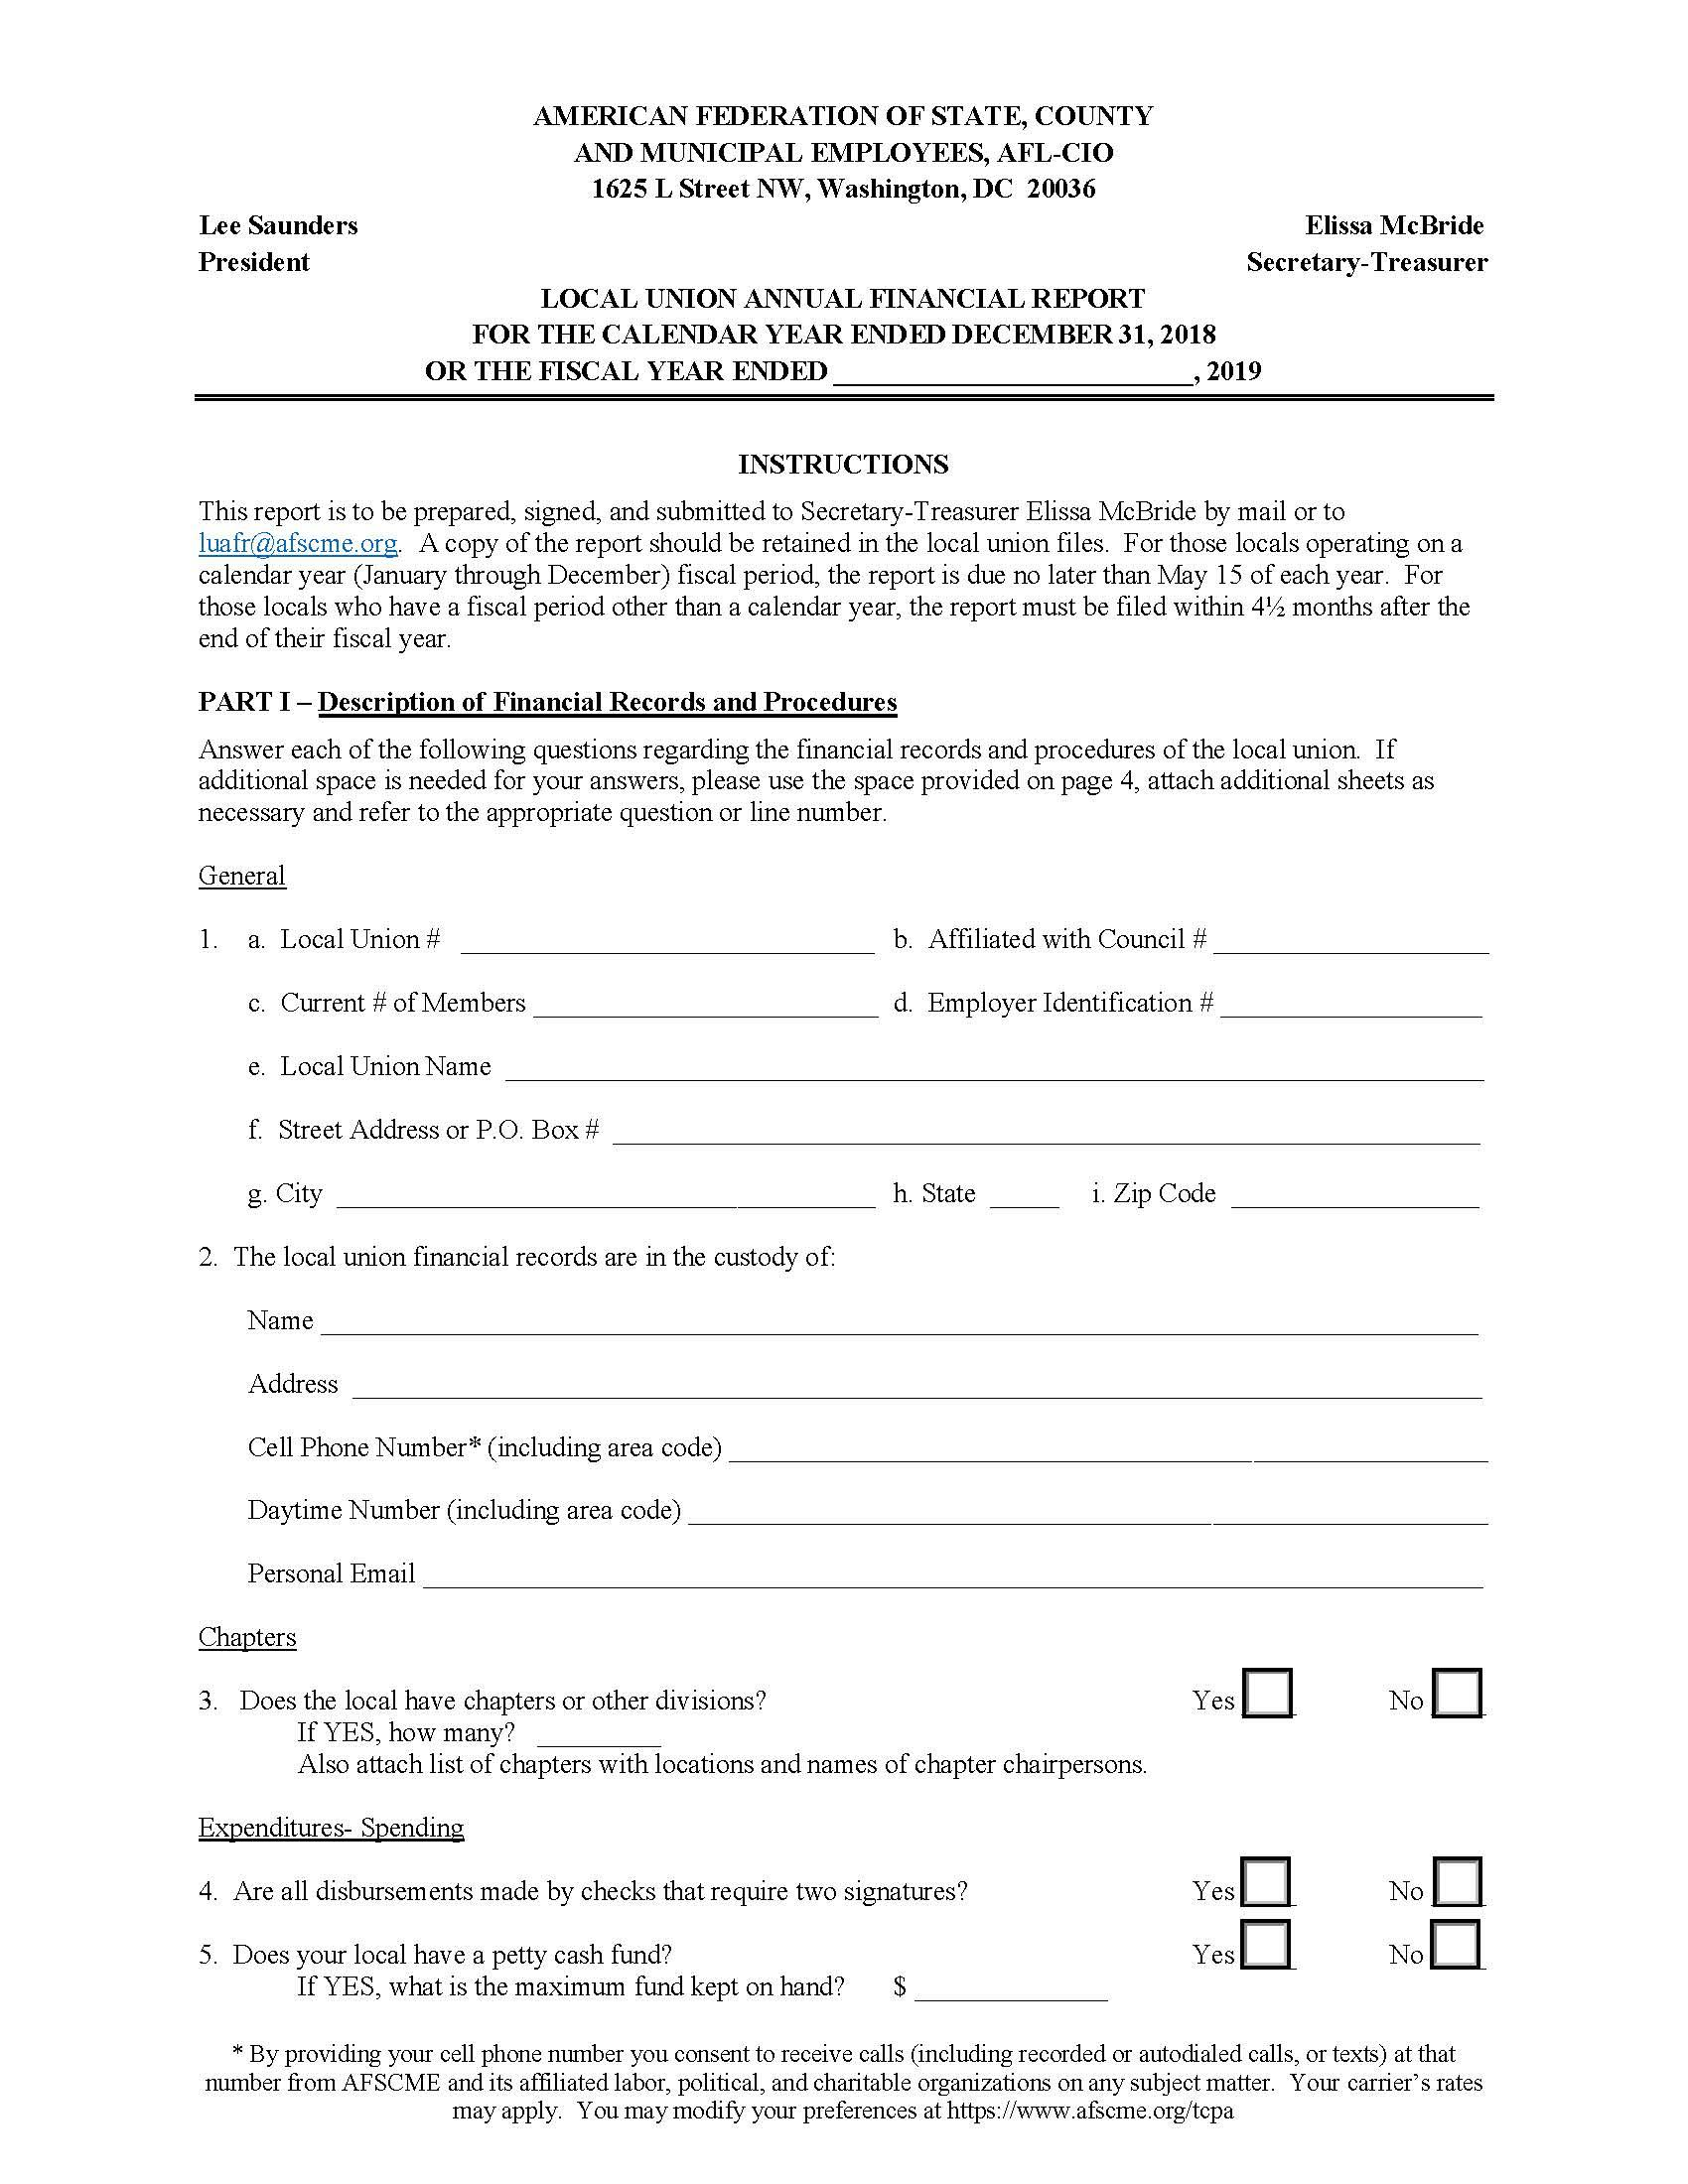 Local Union Annual Financial Report Form — Fillable Version